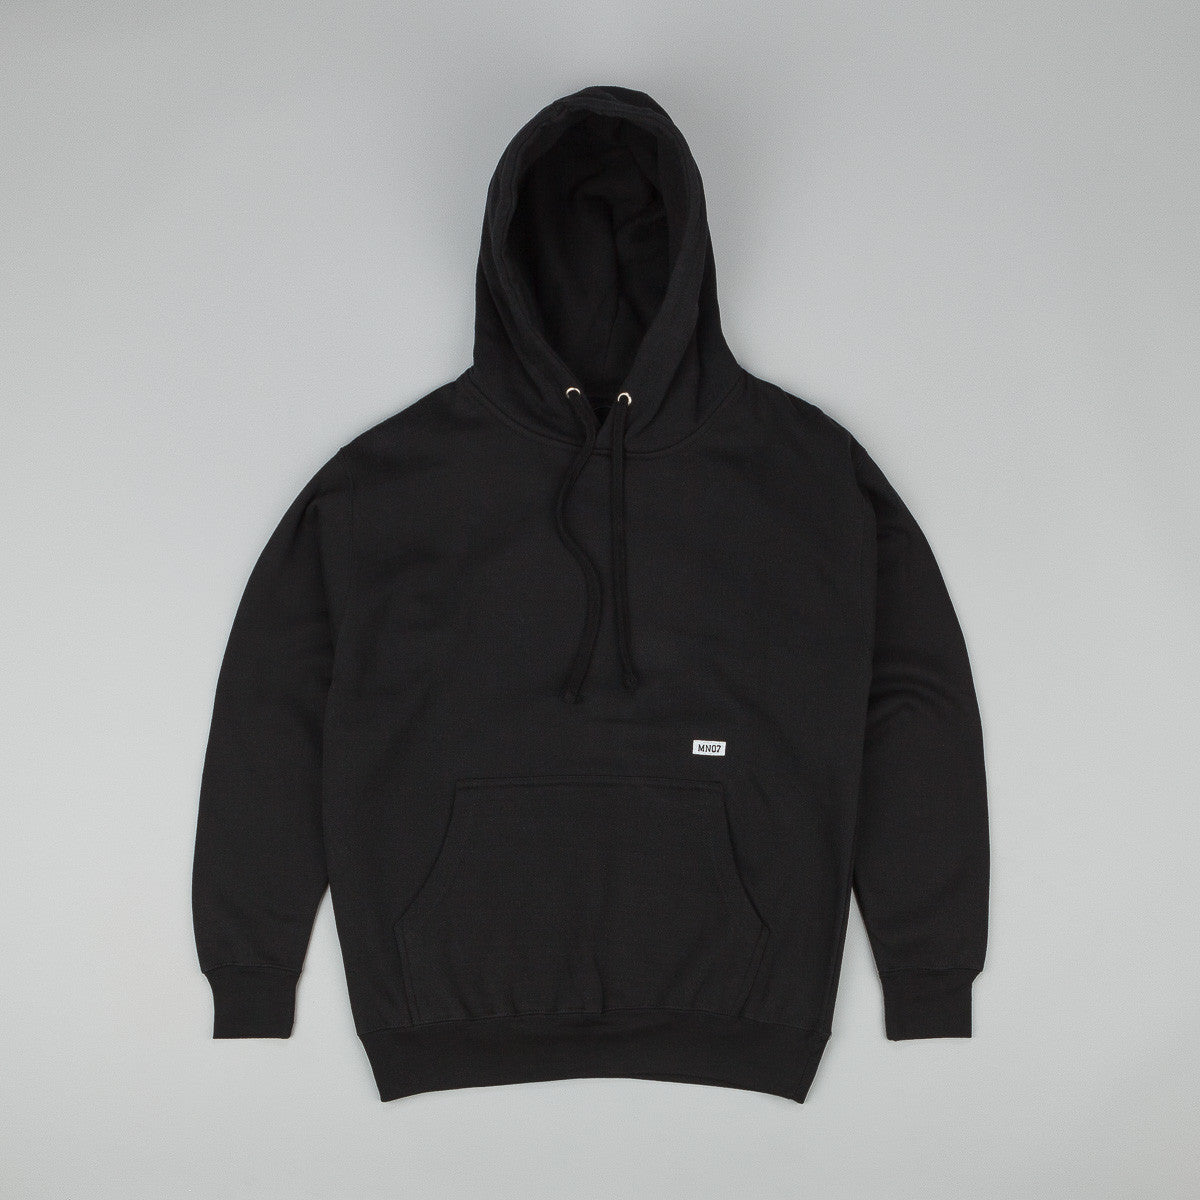 MN07 Stock Hooded Sweatshirt - Black